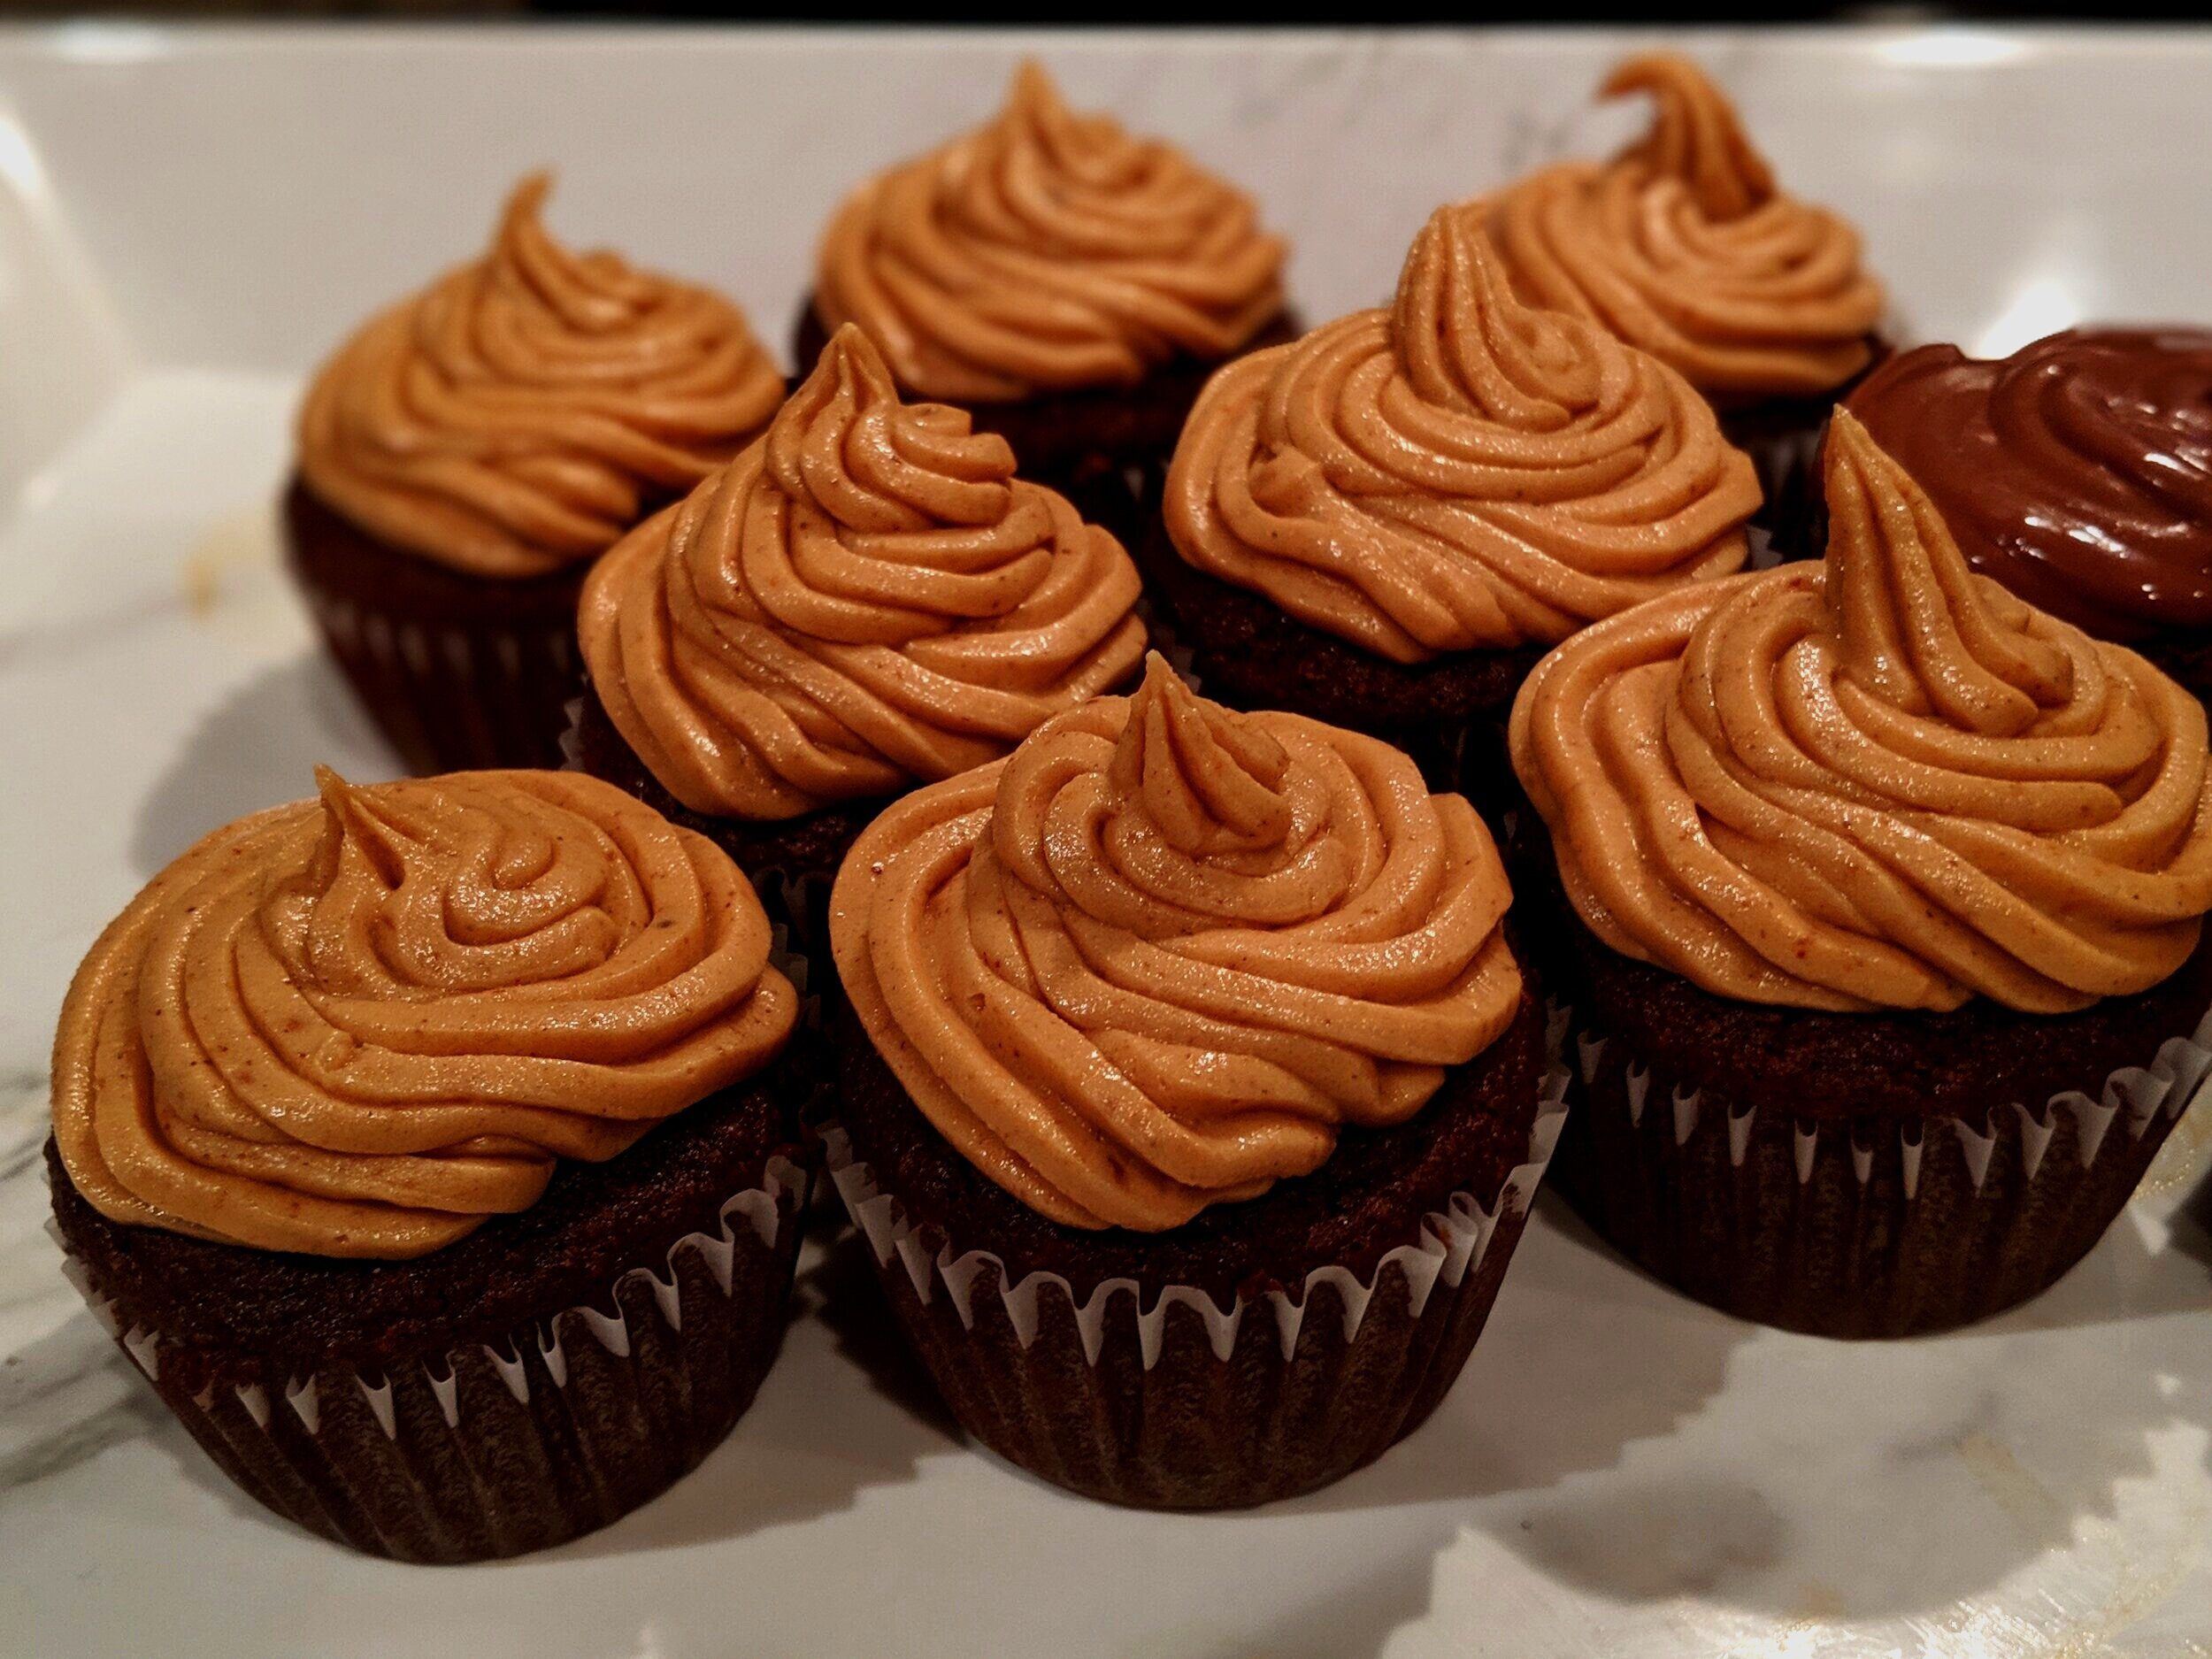 ChipMonk Baking Low Carb Keto Gluten Free Chocolate Chip Cupcakes with Peanut Butter Icing (31).jpg